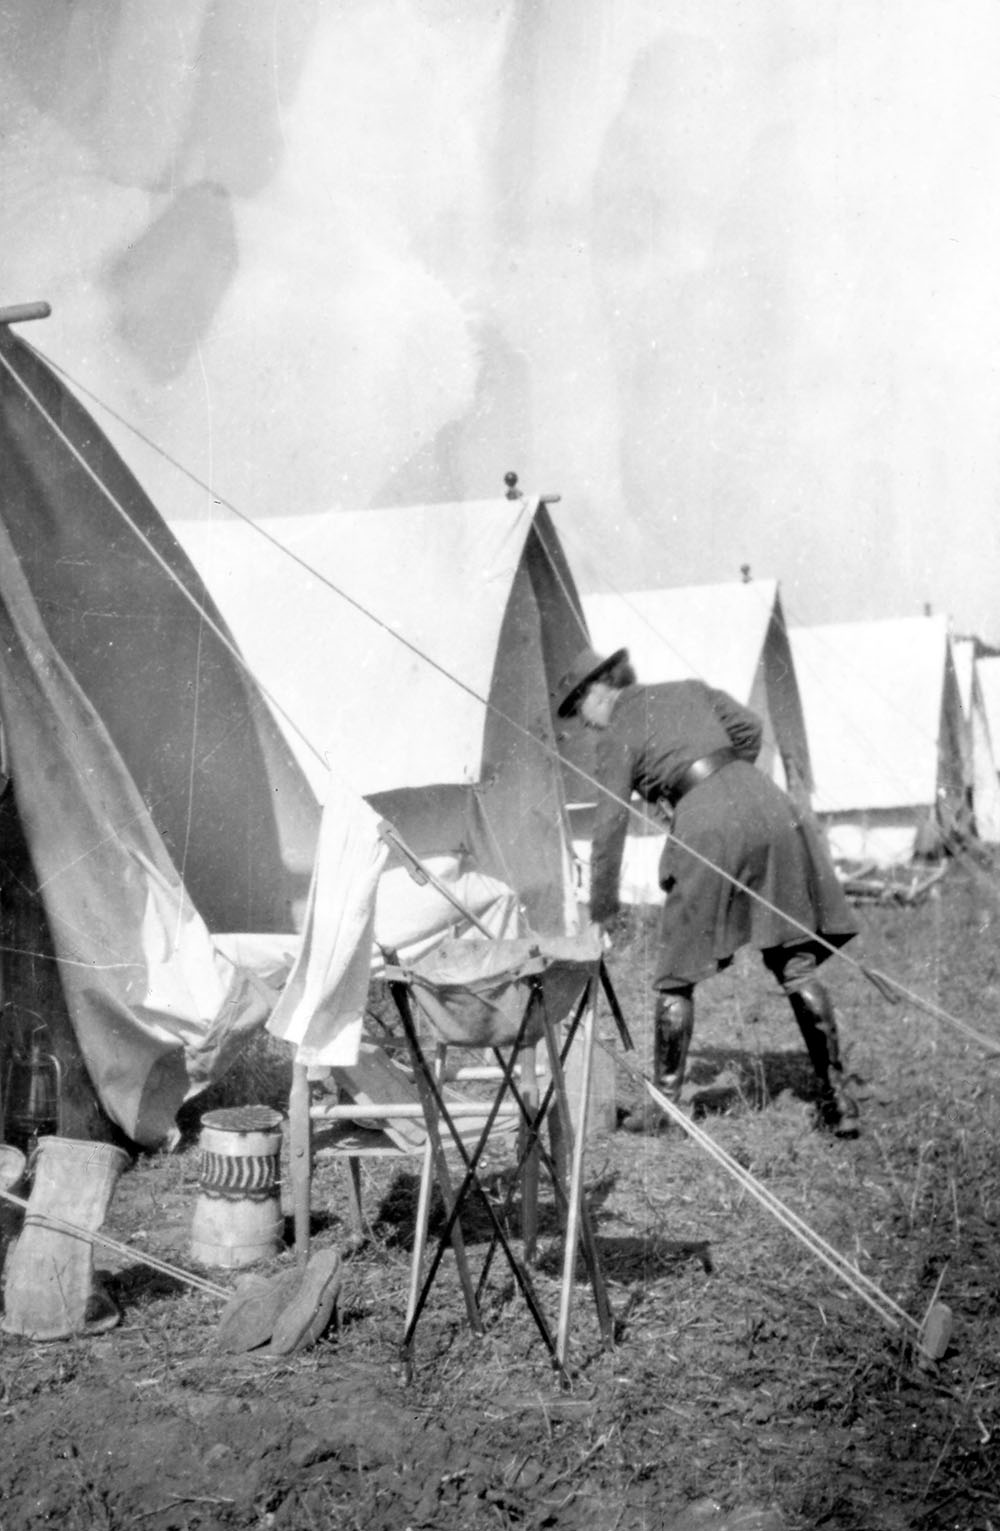 A field of tents with an orderly and washstand in the foreground, possibly in Medjidia the Russian HQ of the Scottish Women's Hospitals in the Dobrudja district of Romania.